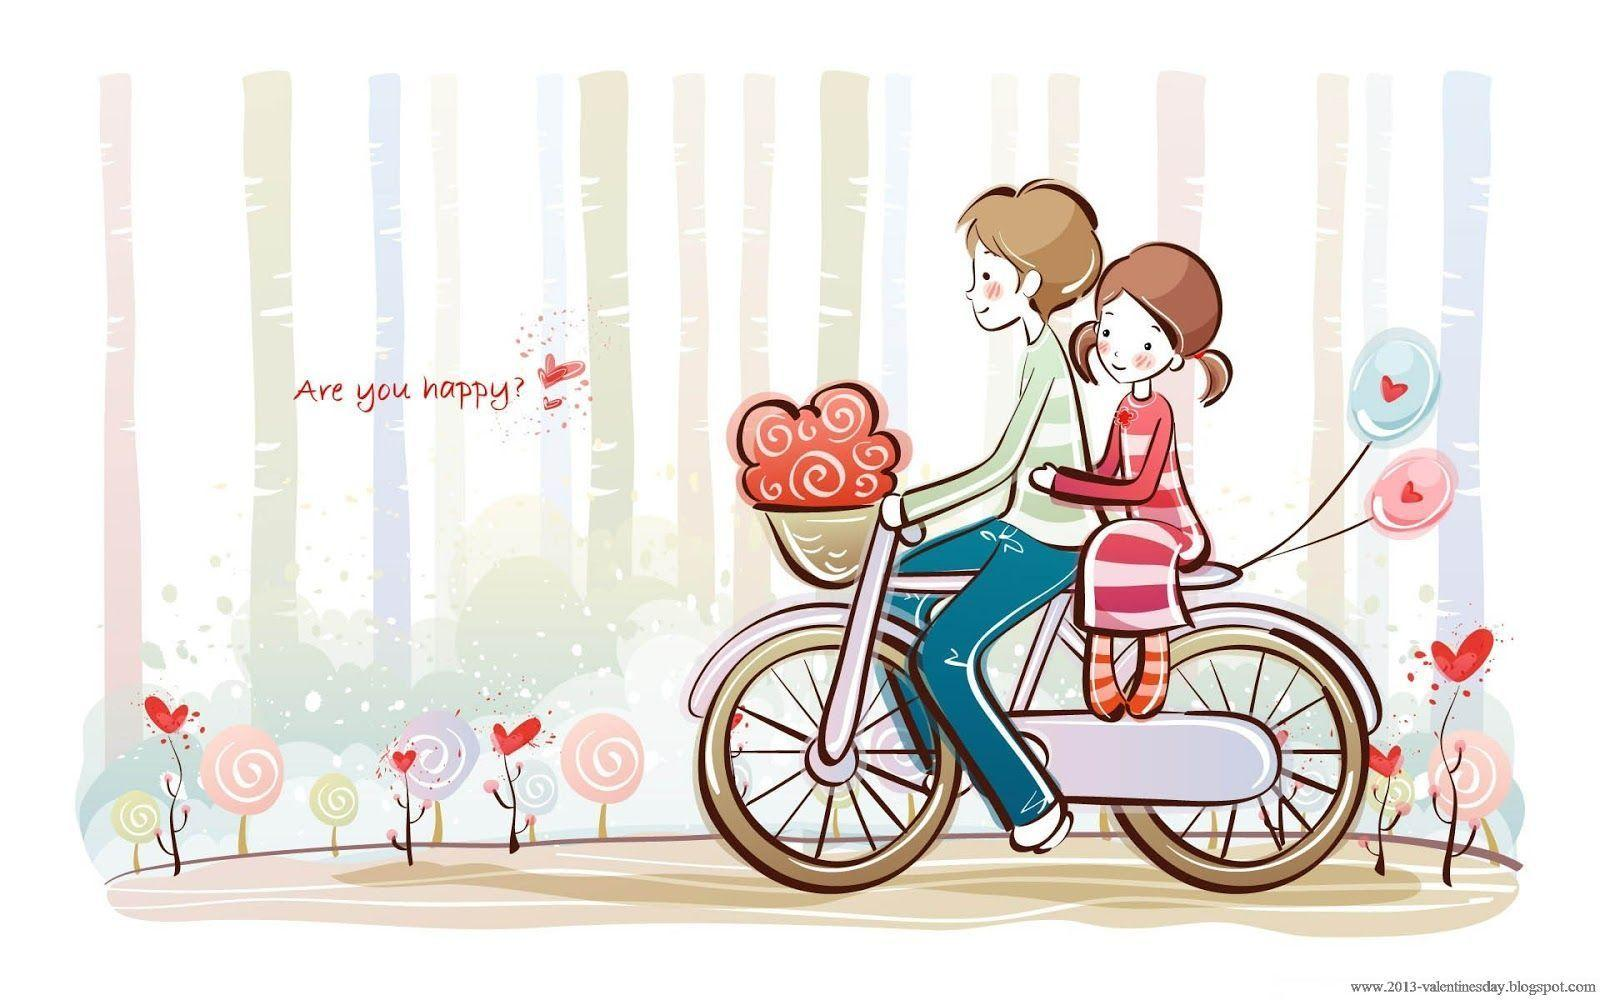 Hd Wallpaper Of cartoon Love couple : Love cartoon Wallpapers - Wallpaper cave